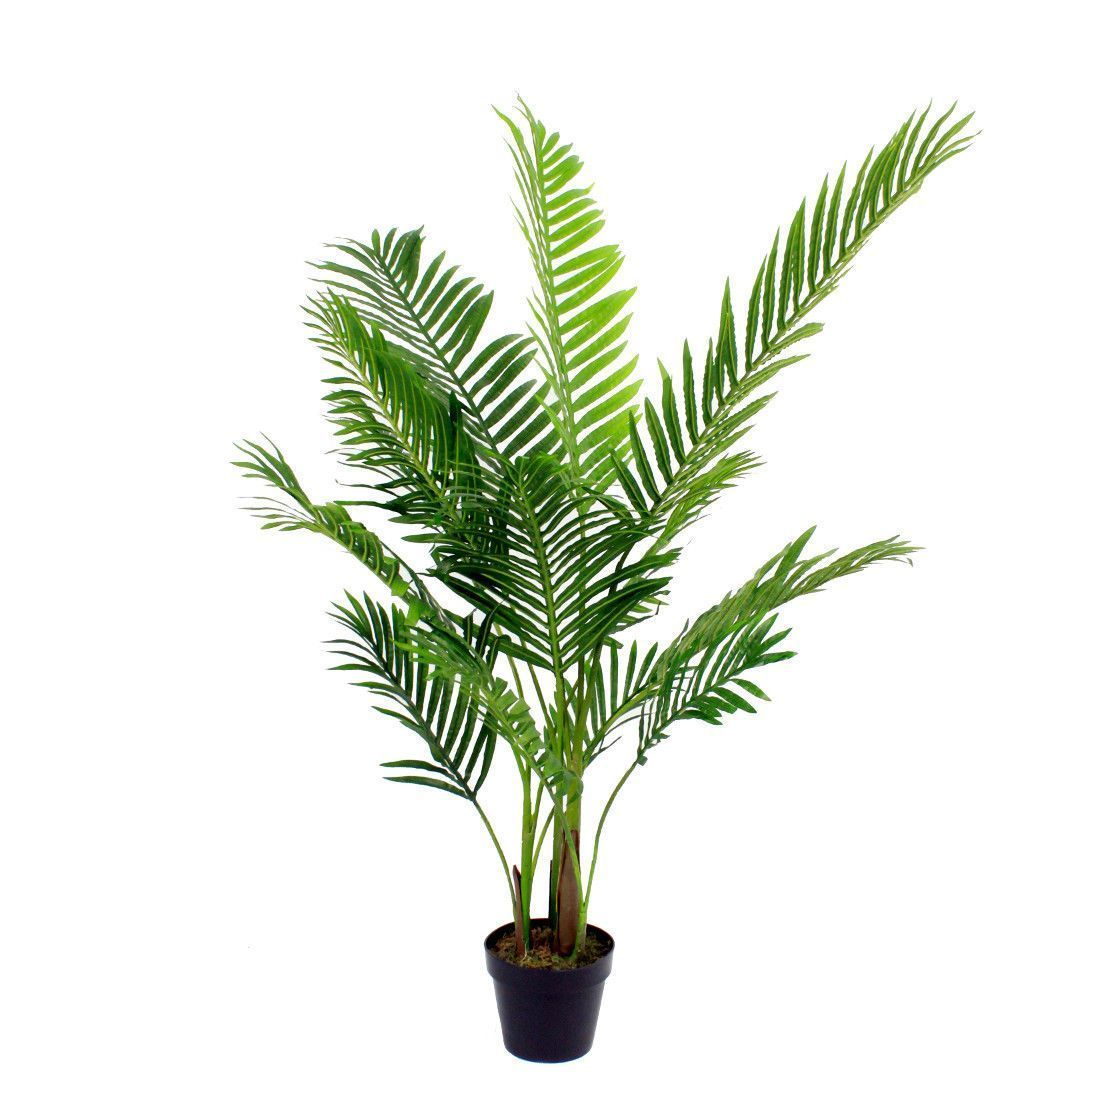 Ikea Palm Tree Miraculous Cool Tips Artificial Plants Living Room Indoor Palms